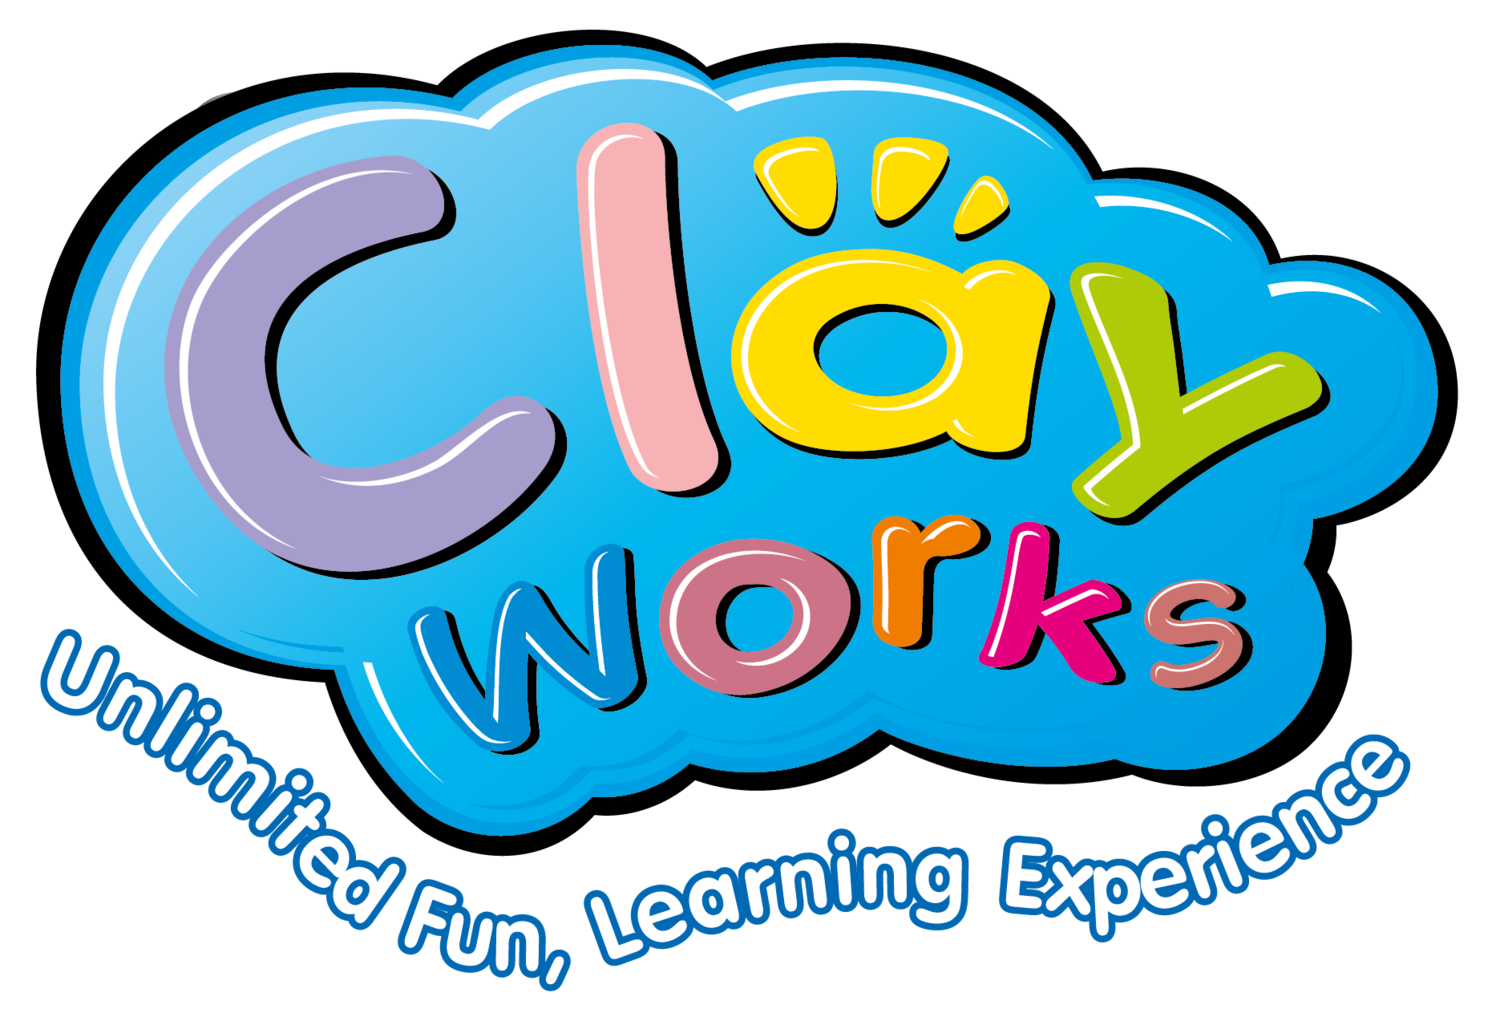 June school holiday workshops. Playdough clipart modeling clay